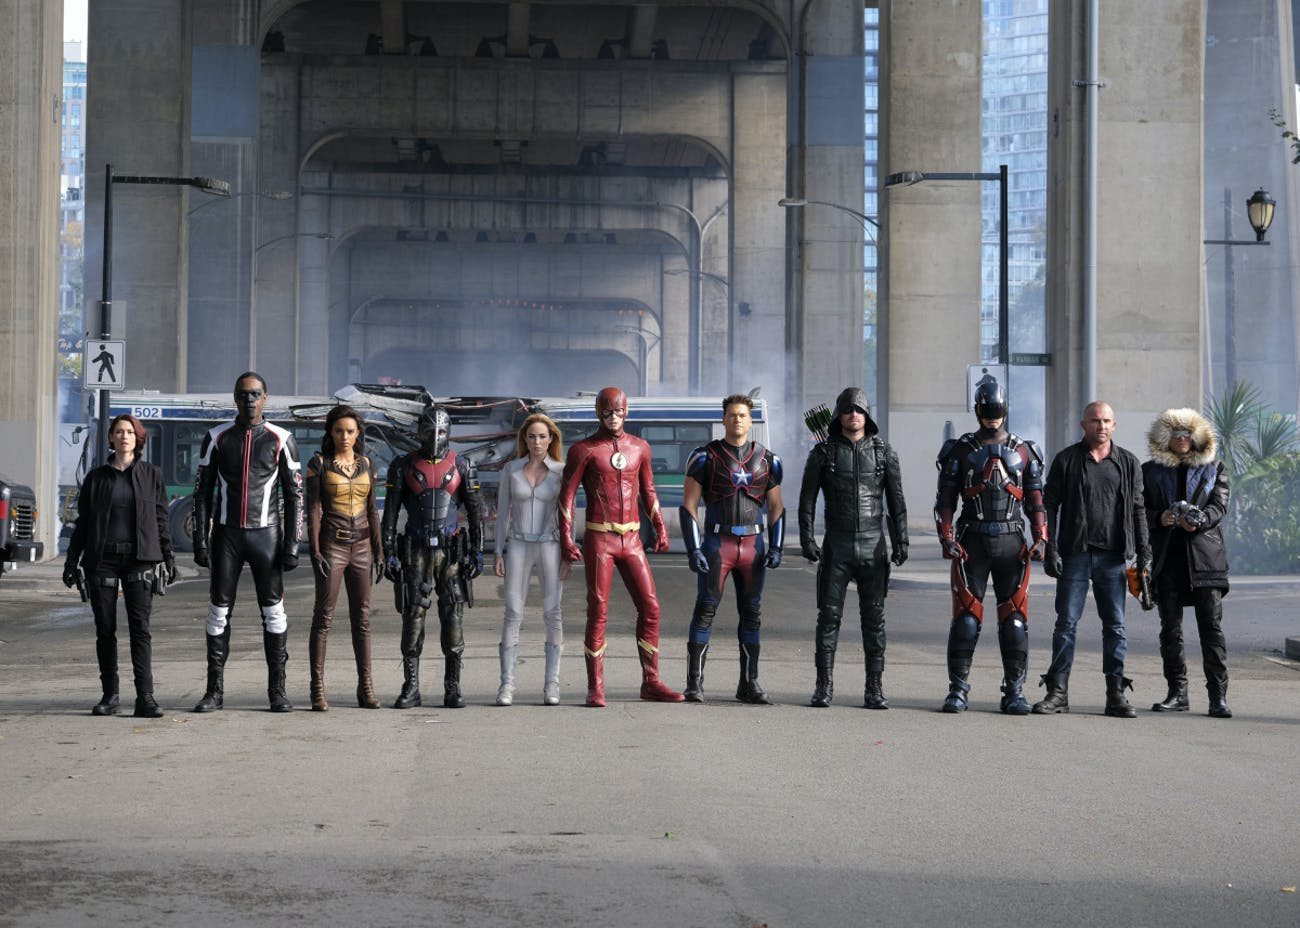 We should have seen it coming when Firestorm didn't line up for the final battle.